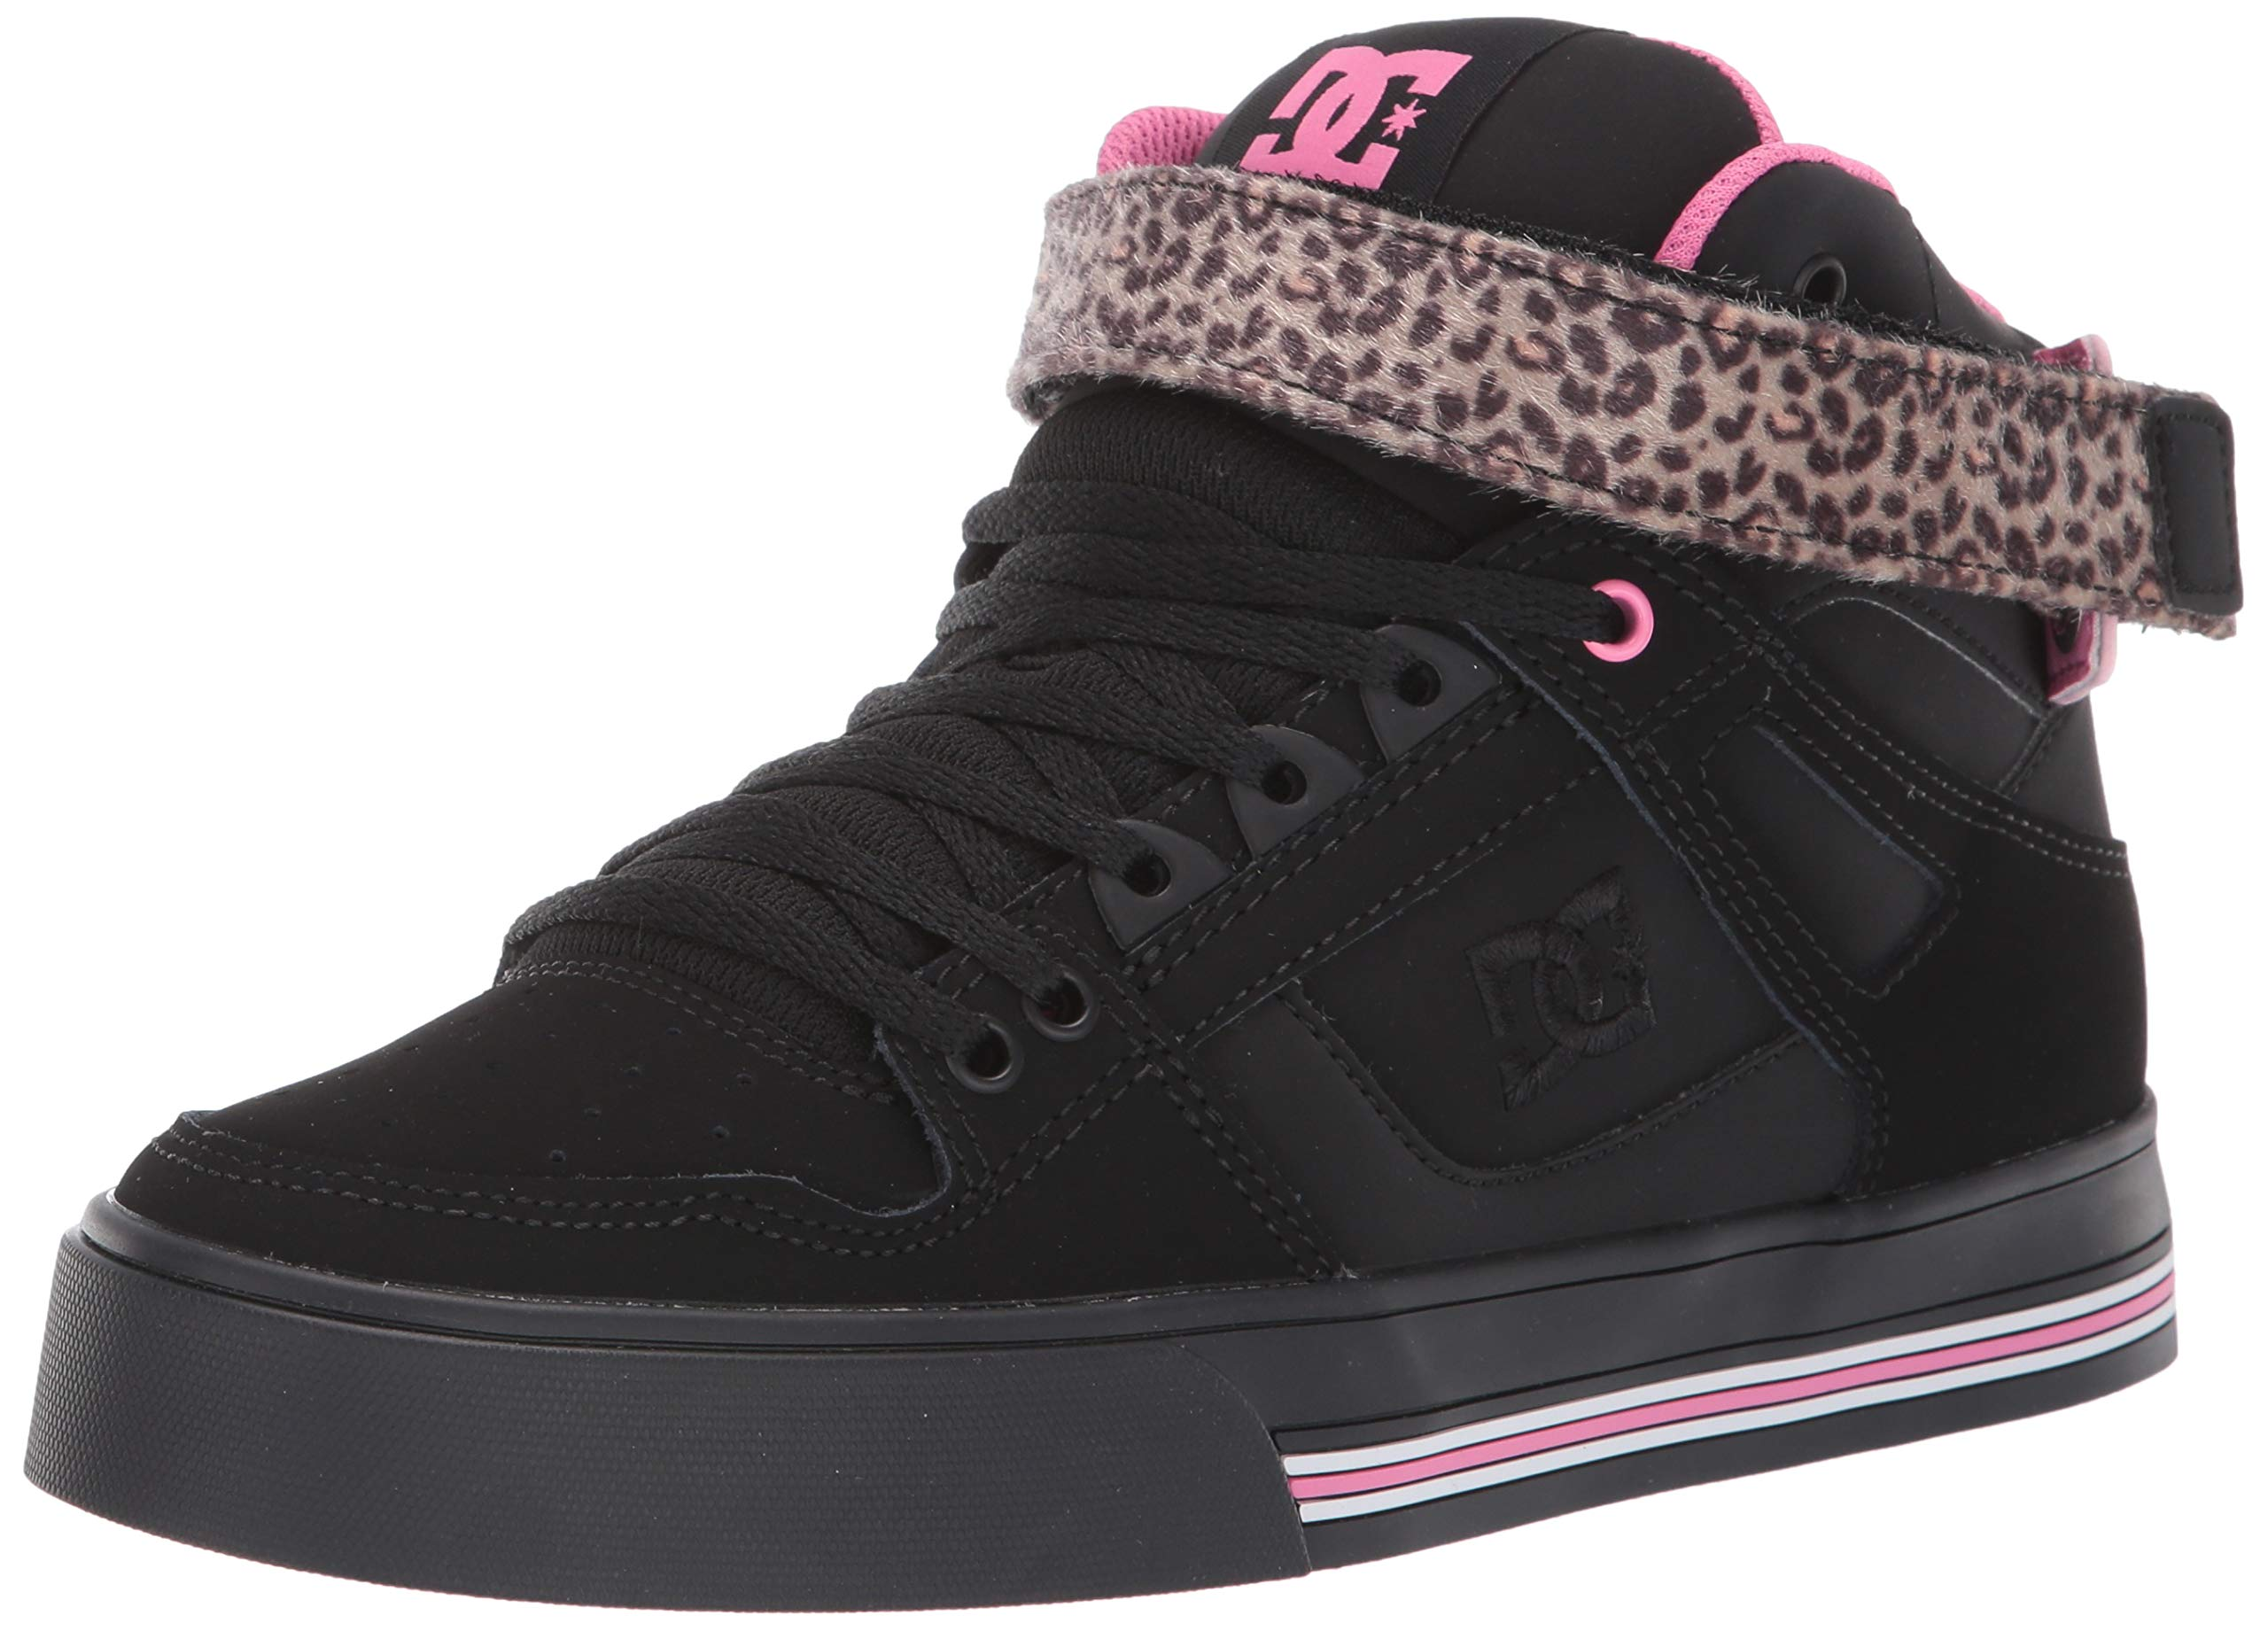 DC Women's Pure HIGH-TOP V Skate Shoe, Pink/Black, 8 M US by DC